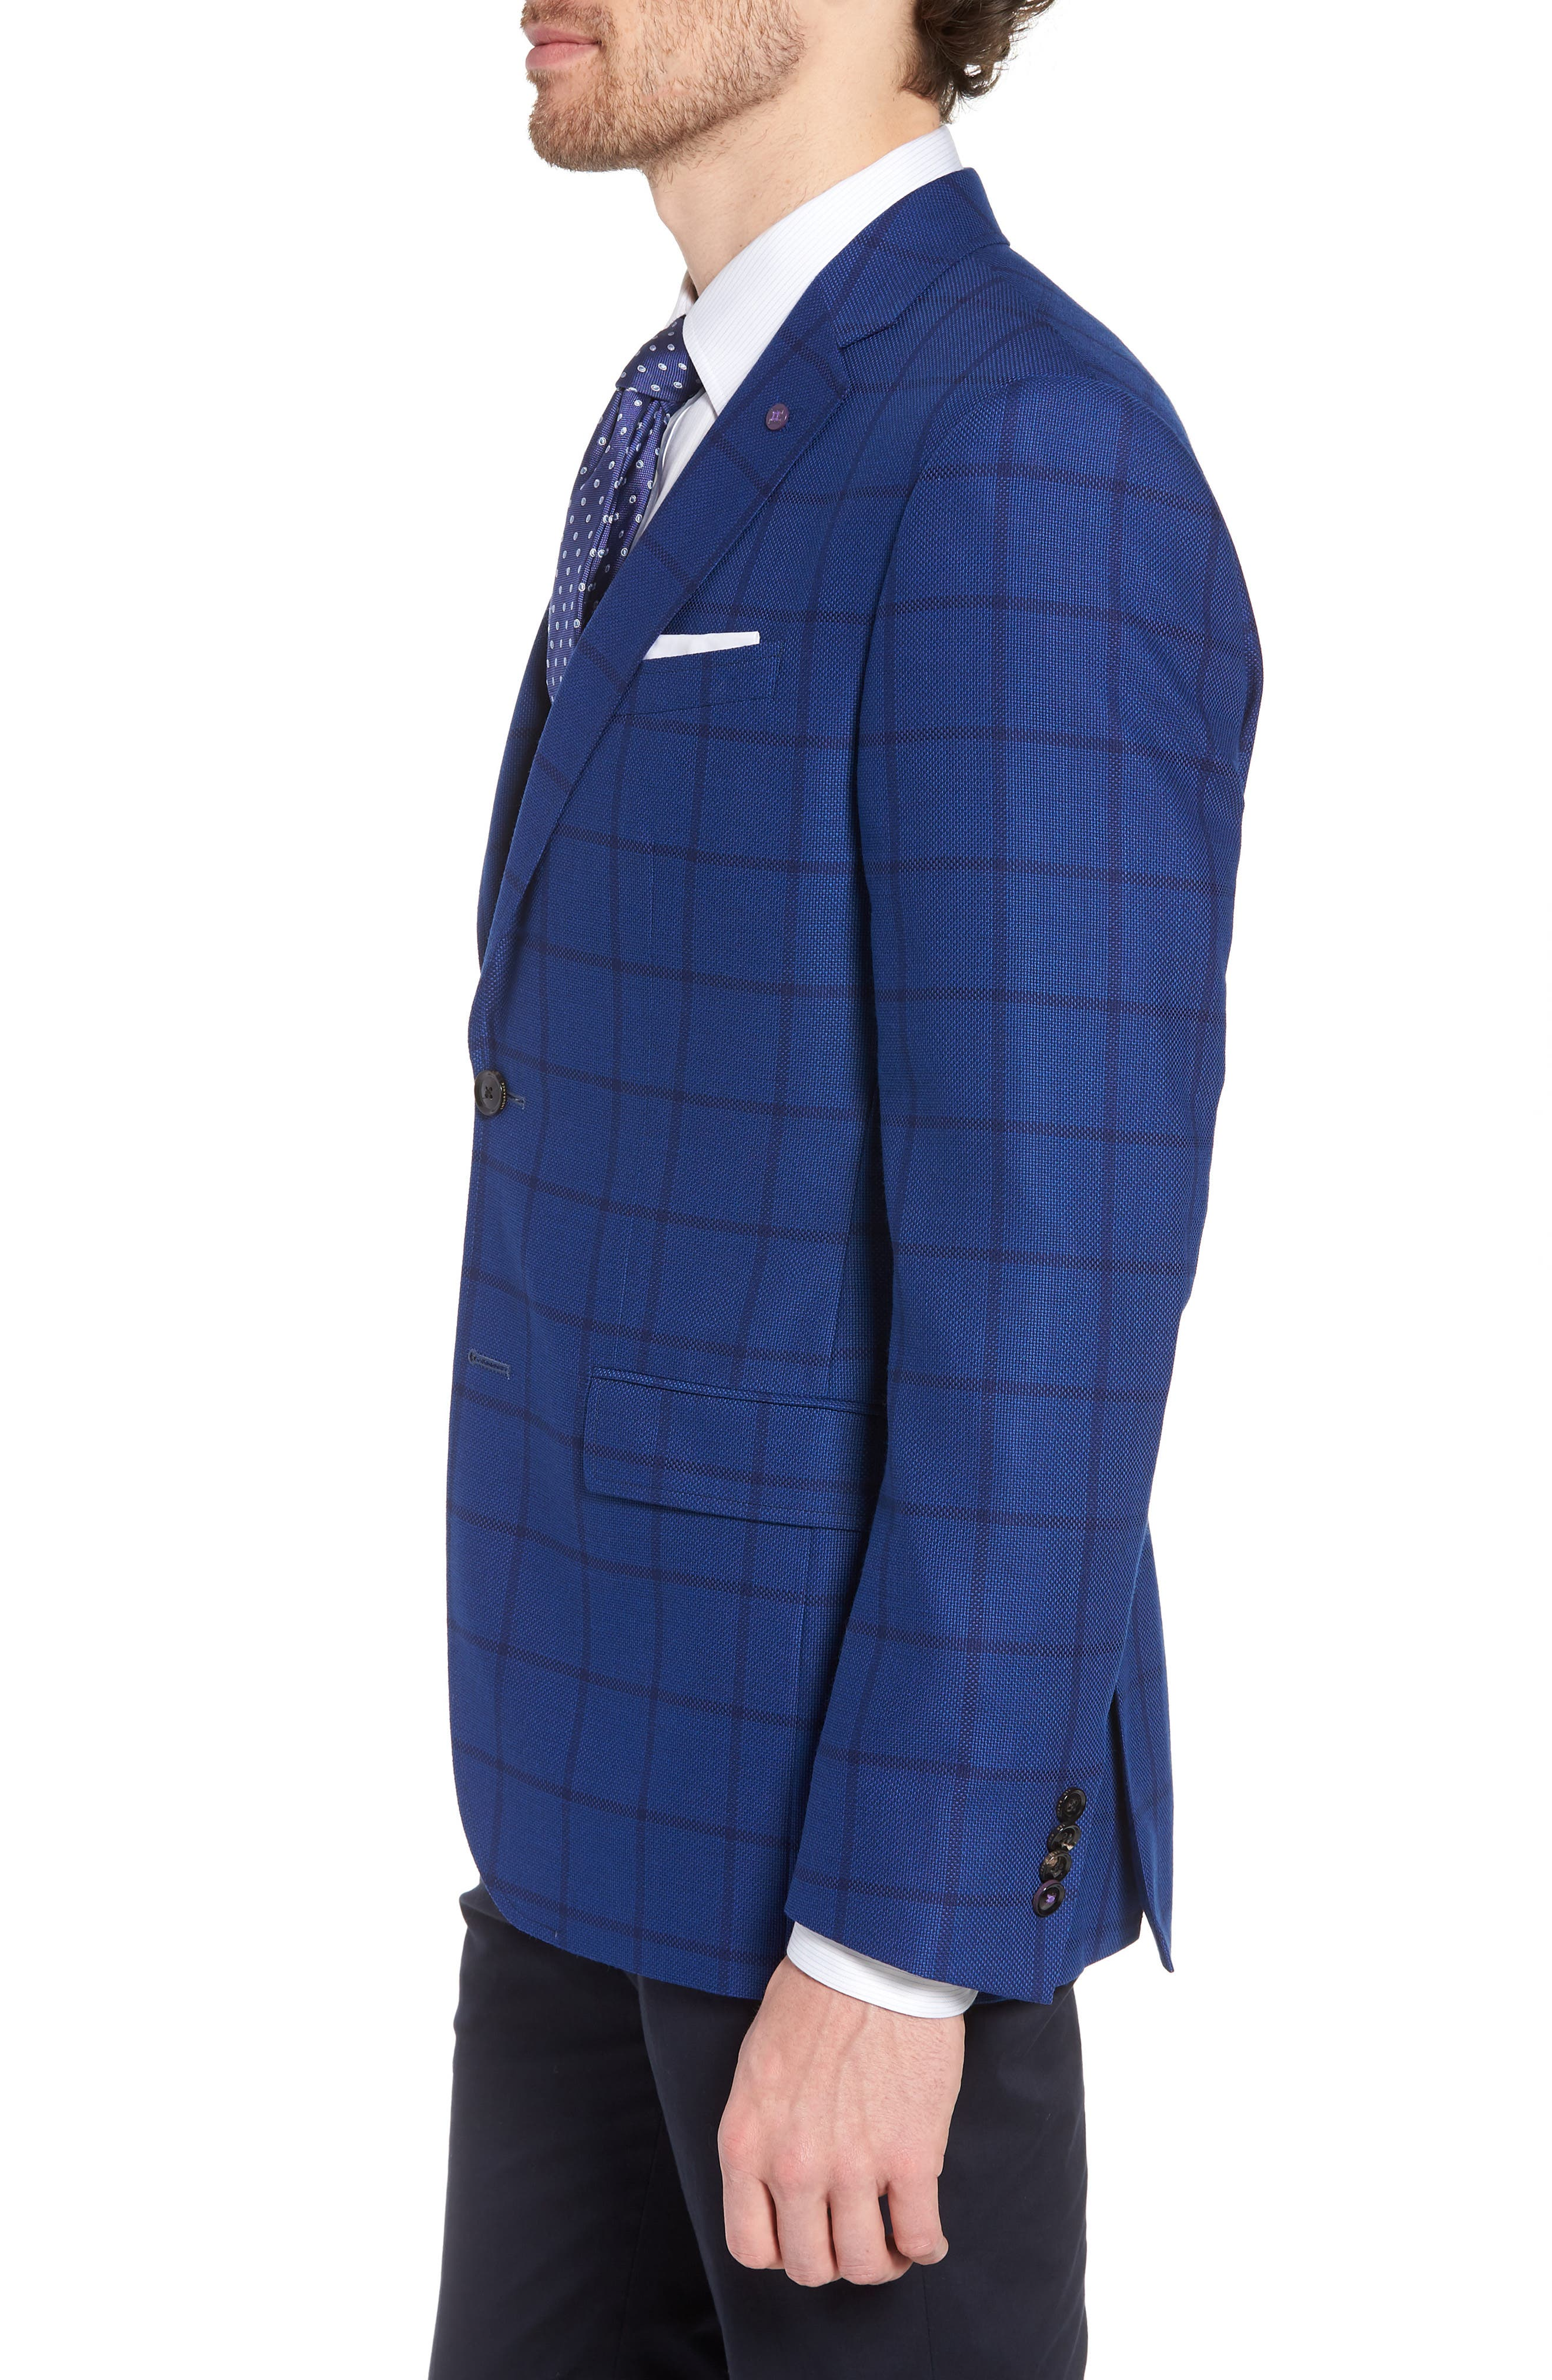 Jay Trim Fit Windowpane Wool Sport Coat,                             Alternate thumbnail 3, color,                             Blue